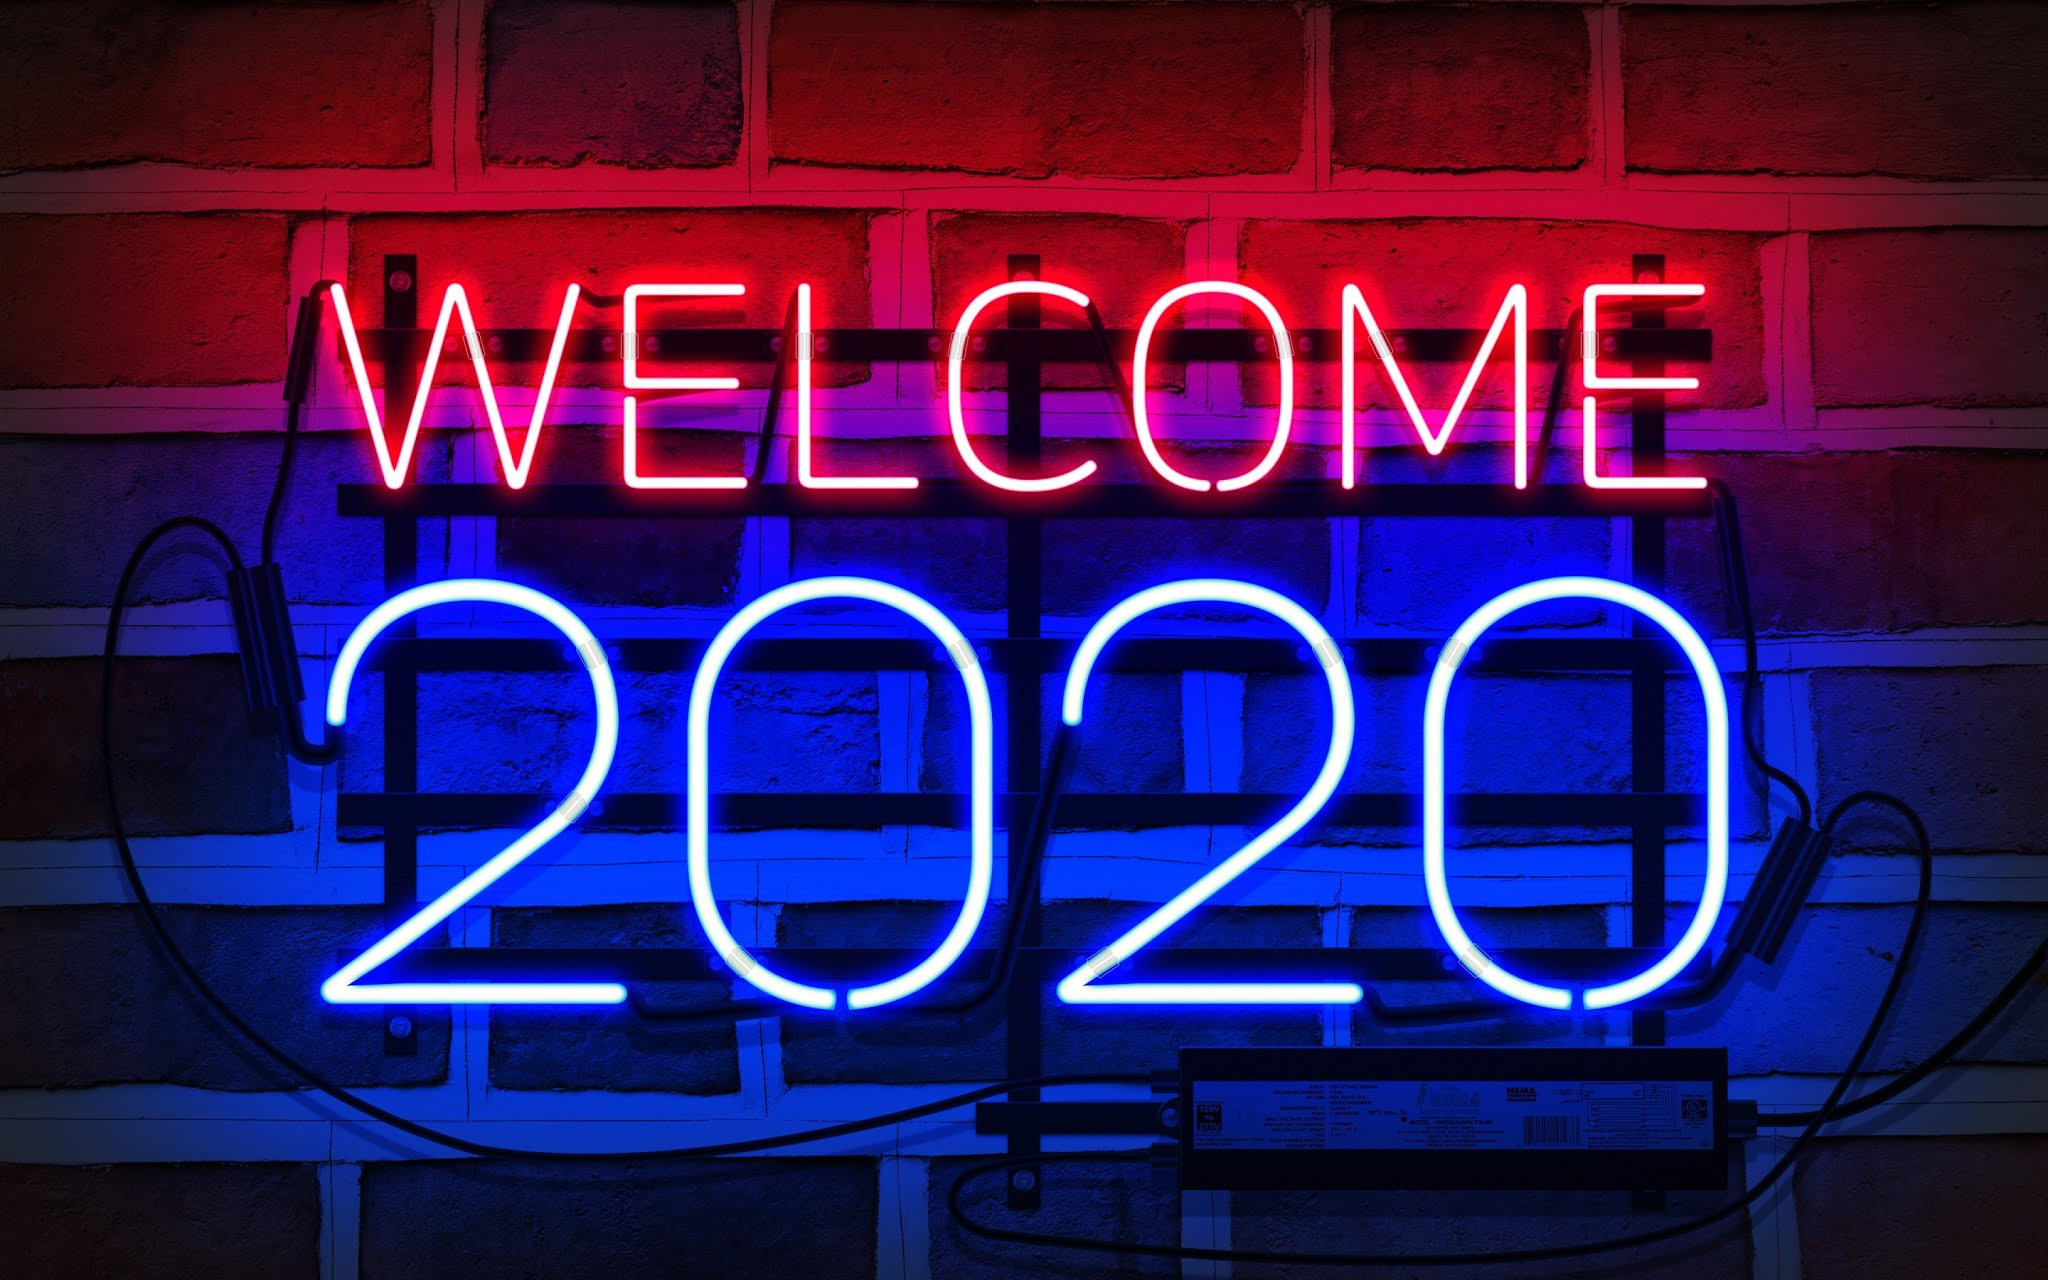 2020 New Year Wallpaper 2048x1280